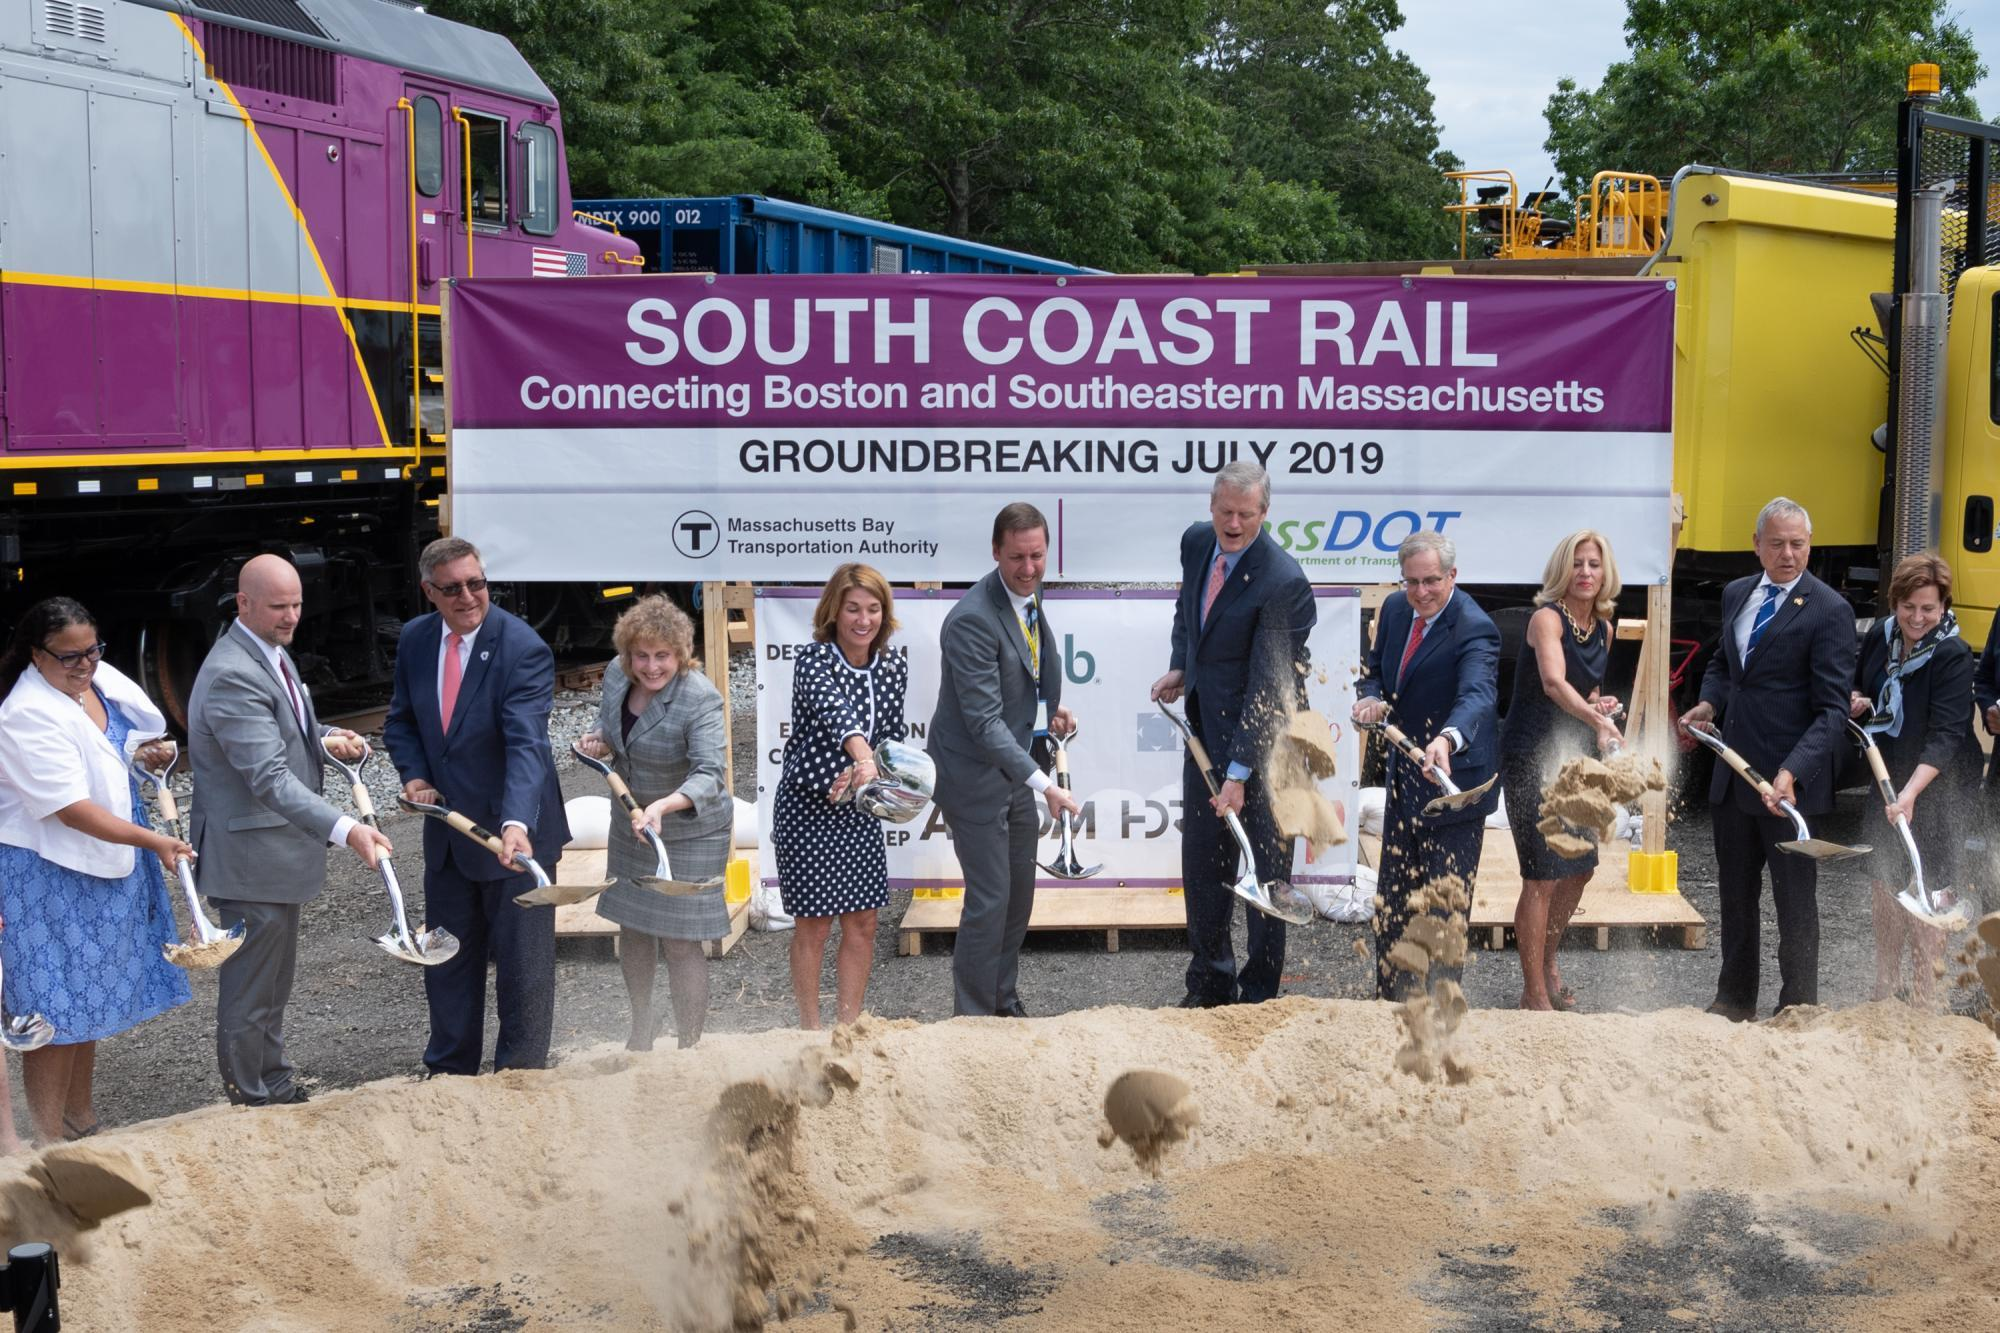 Officials with shovels at the groundbreaking of South Coast Rail